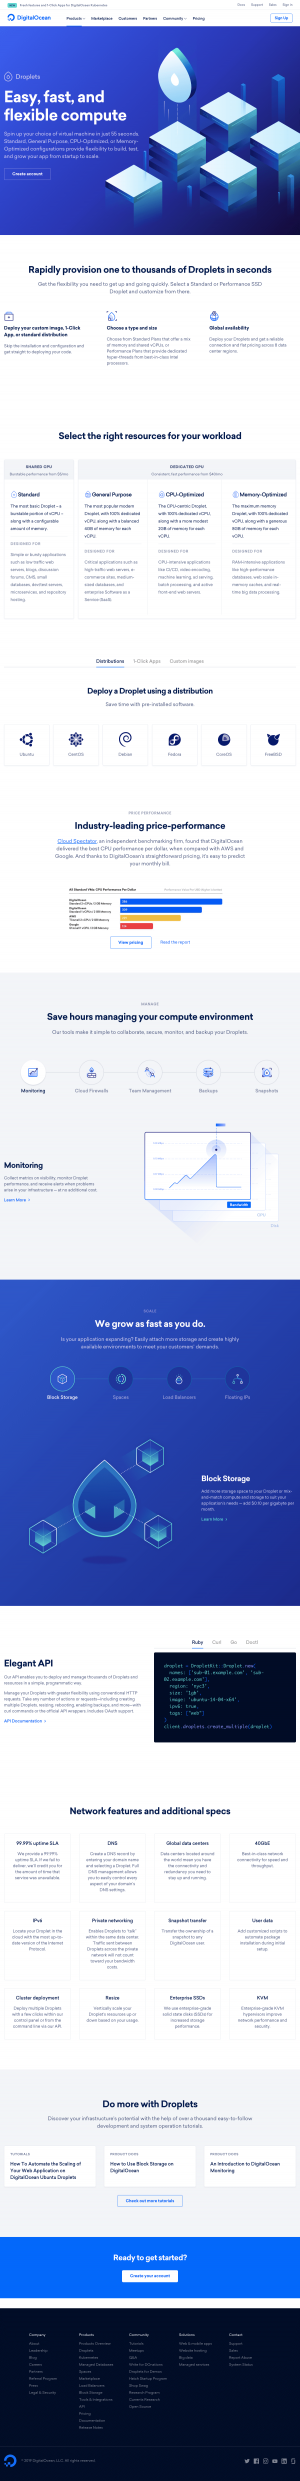 DigitalOcean - Features page 1